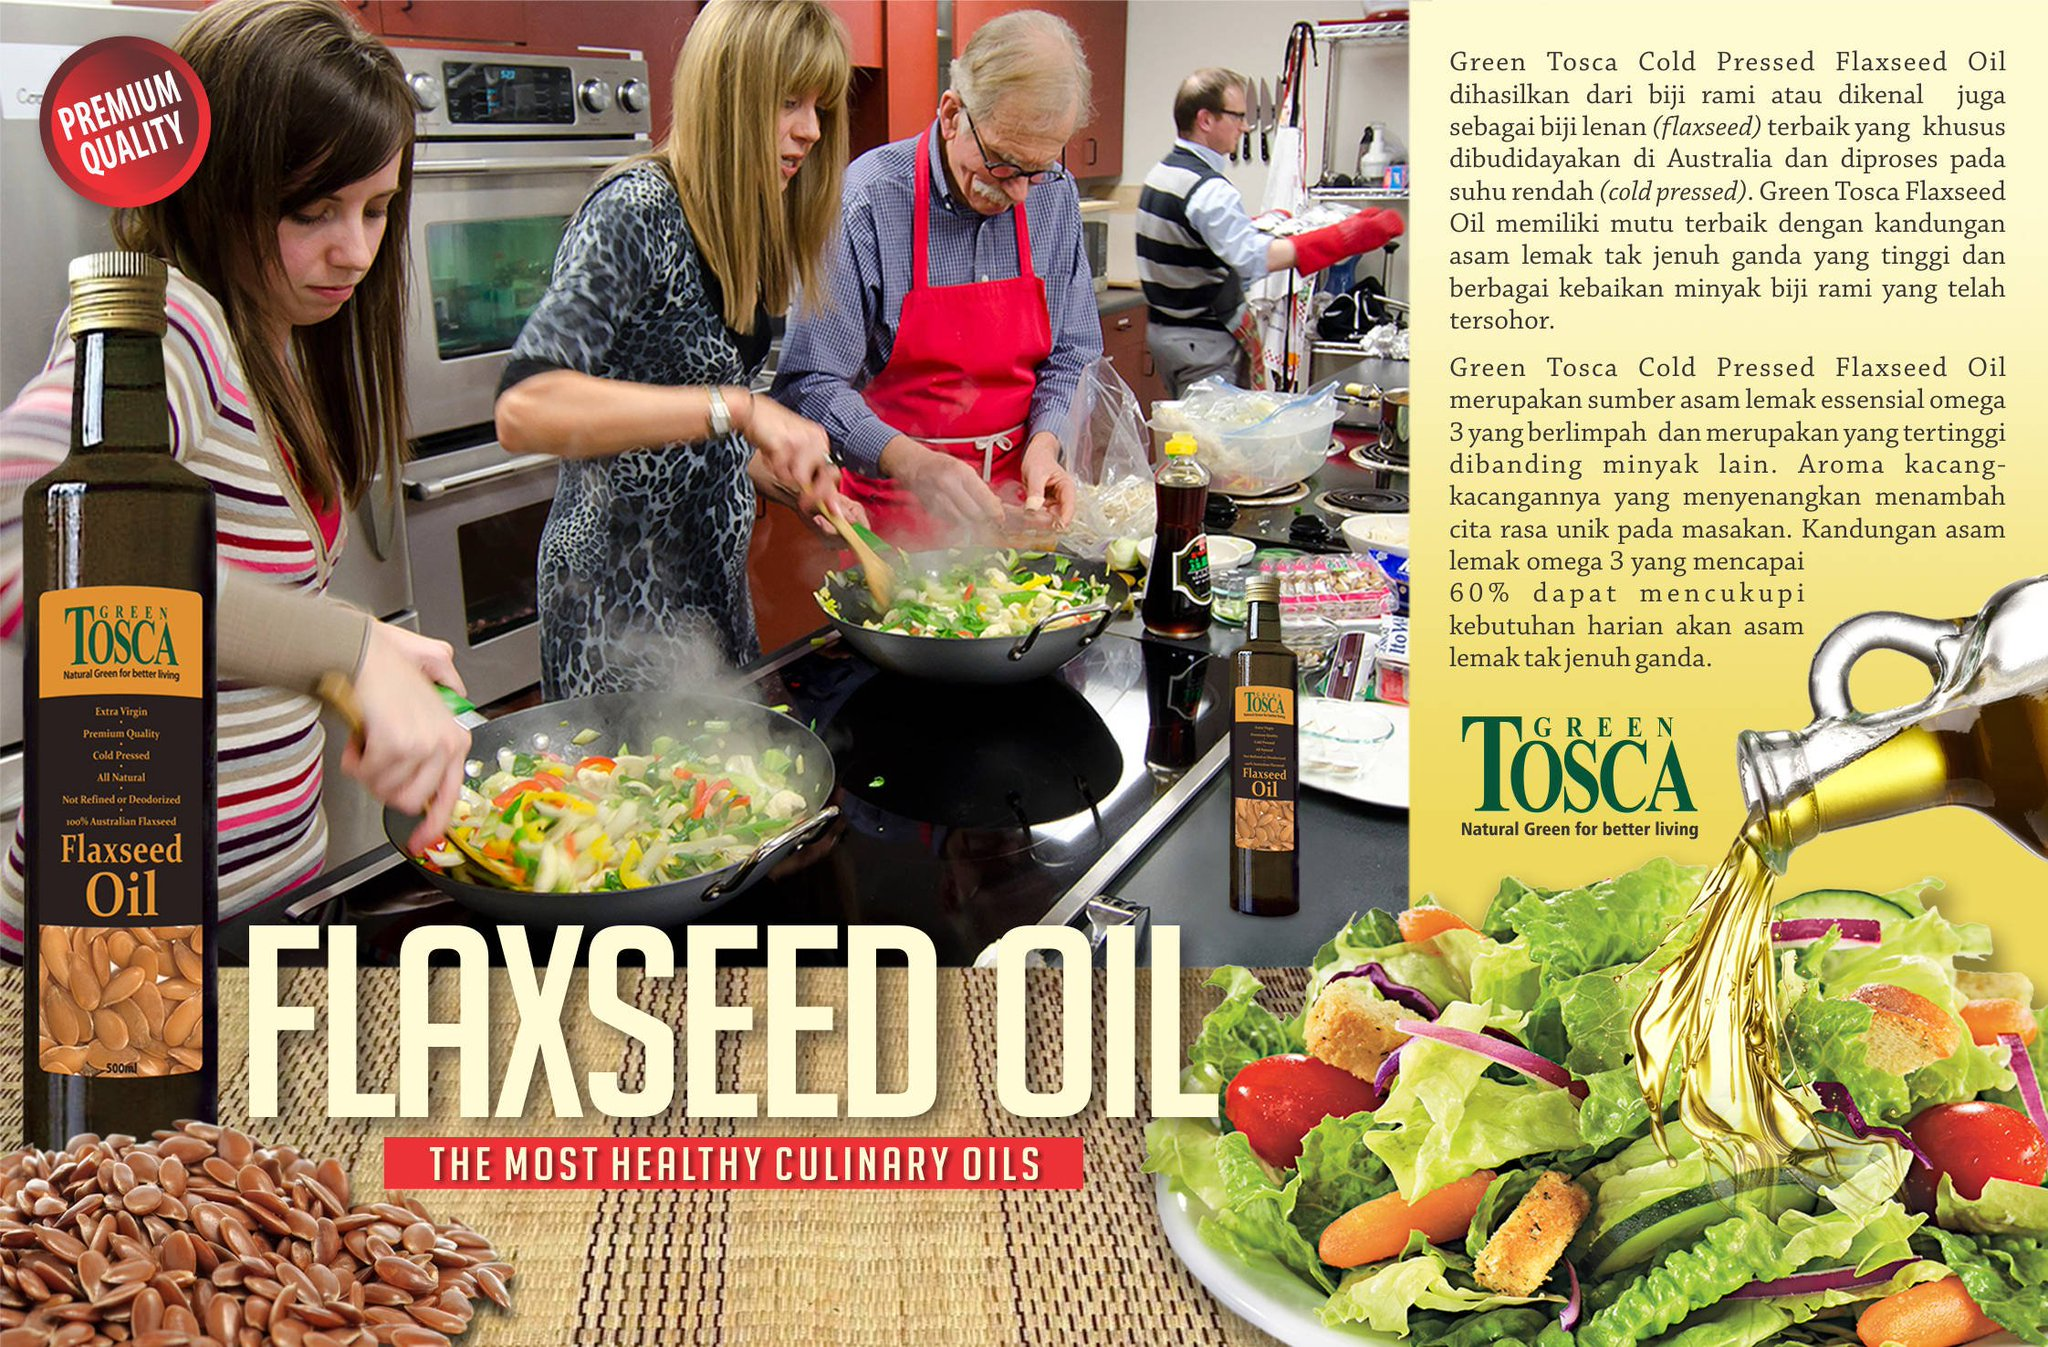 Minyak Green Tosca On Twitter Flaxseed Oil Is The Only Plant Oil Containing More Than 60 Omega 3 Fatty Acd Take It As Your Daily Supplement Https T Co Eo3usnkgzs Https T Co K9q1nyuj8e